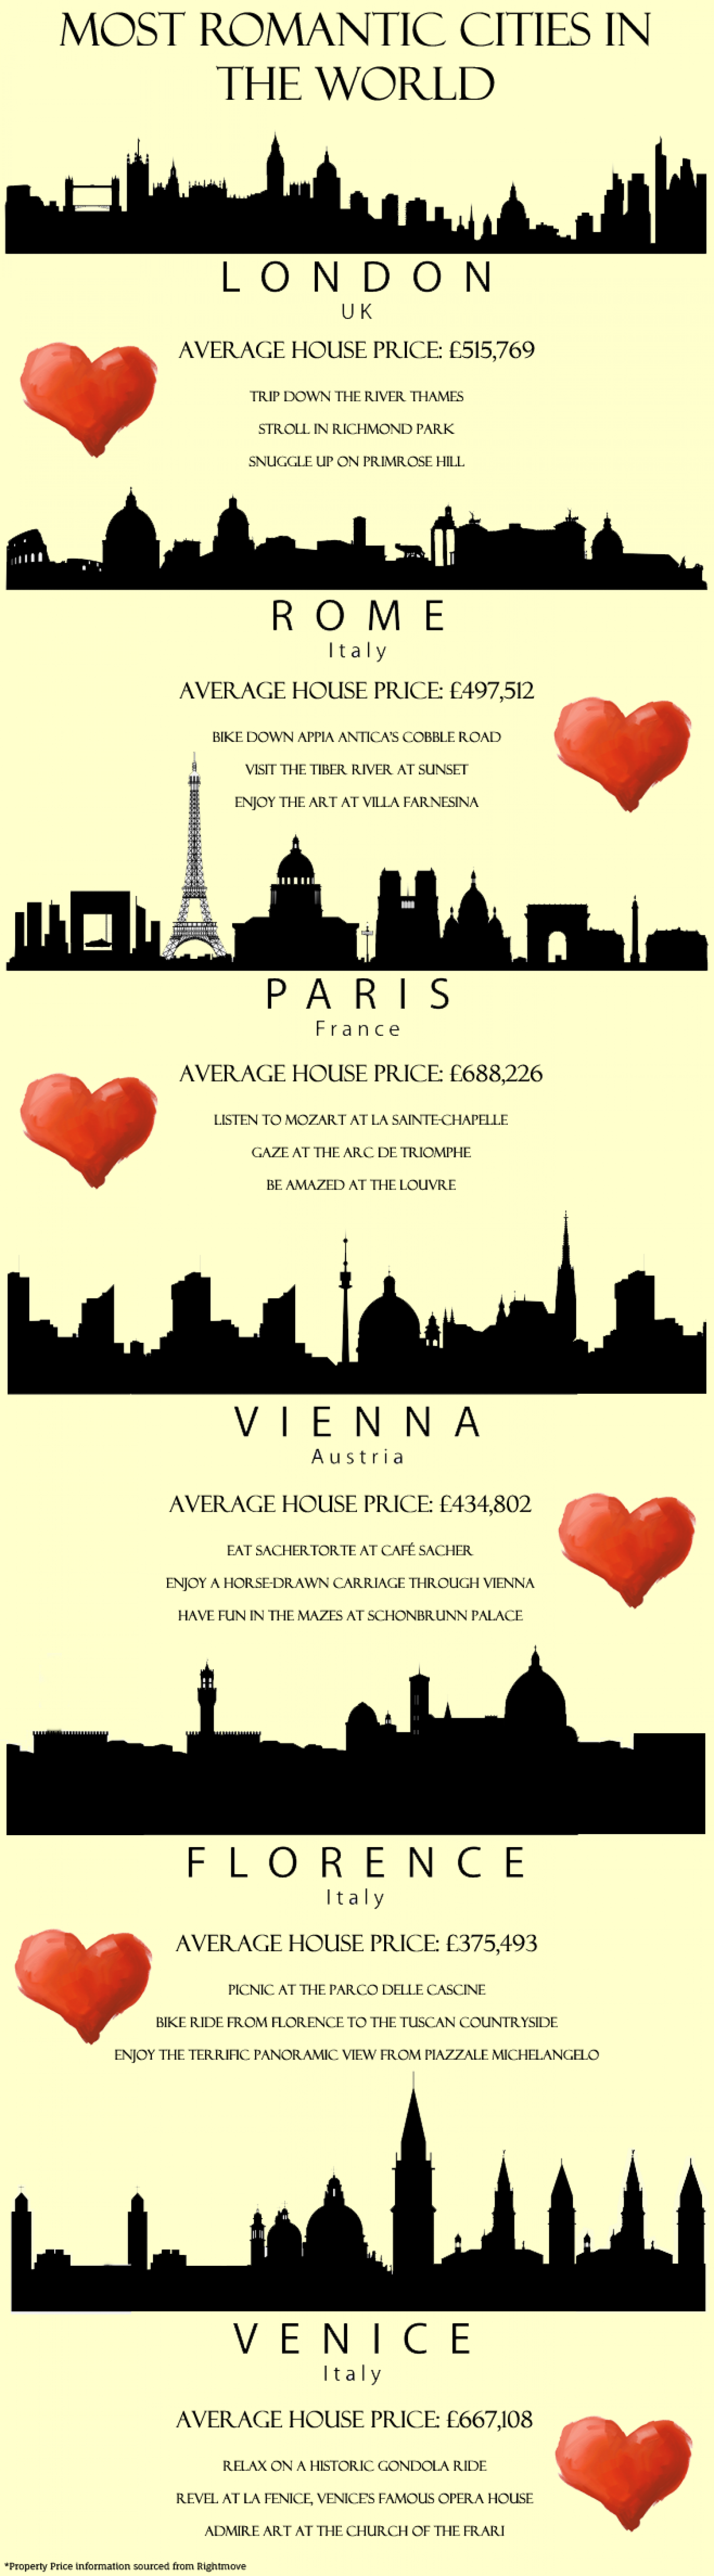 Most Romantic Cities In The World Infographic